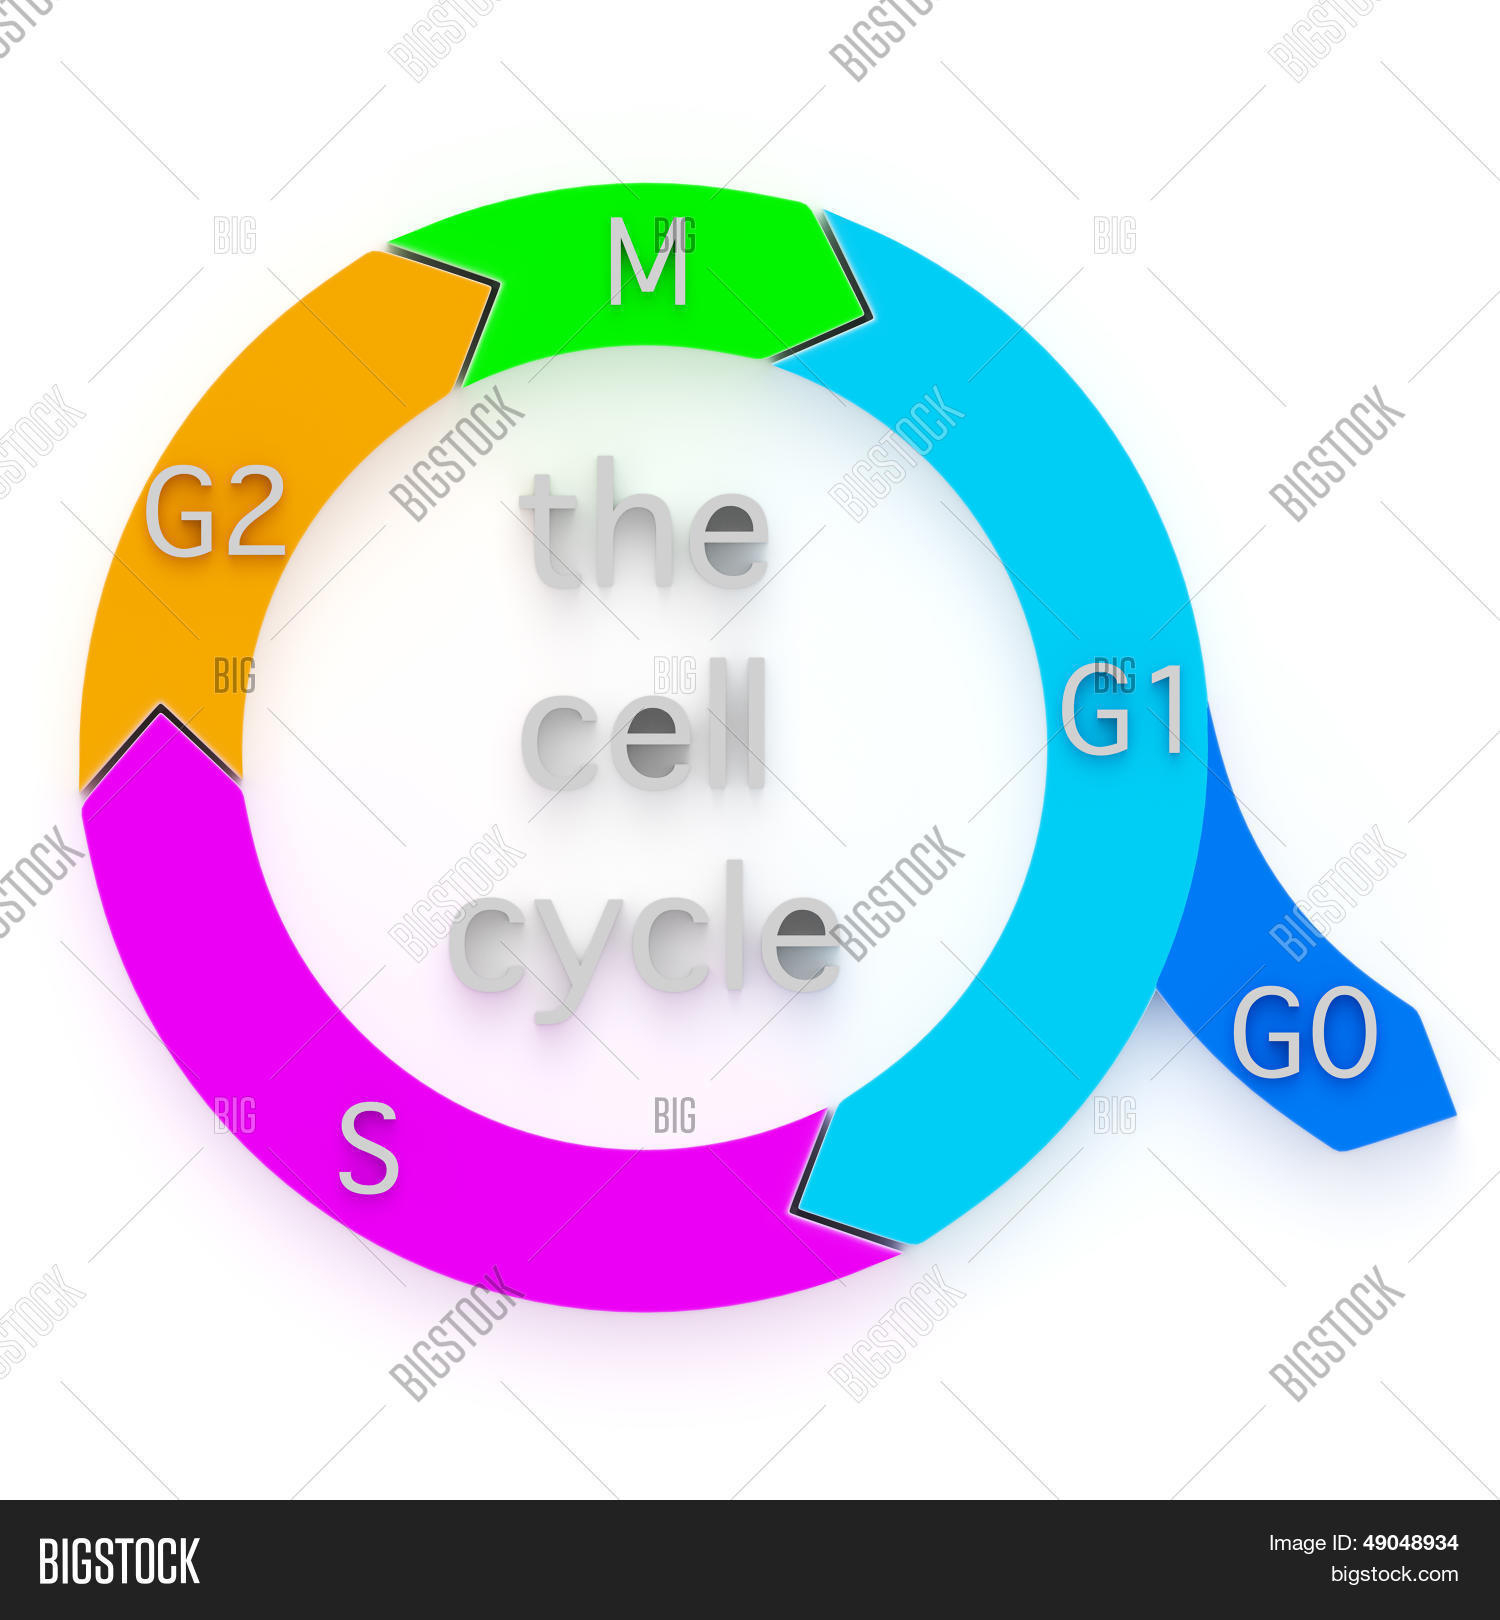 Cell Cycle Diagram Diagram Cell Cycle Image Photo Free Trial Bigstock